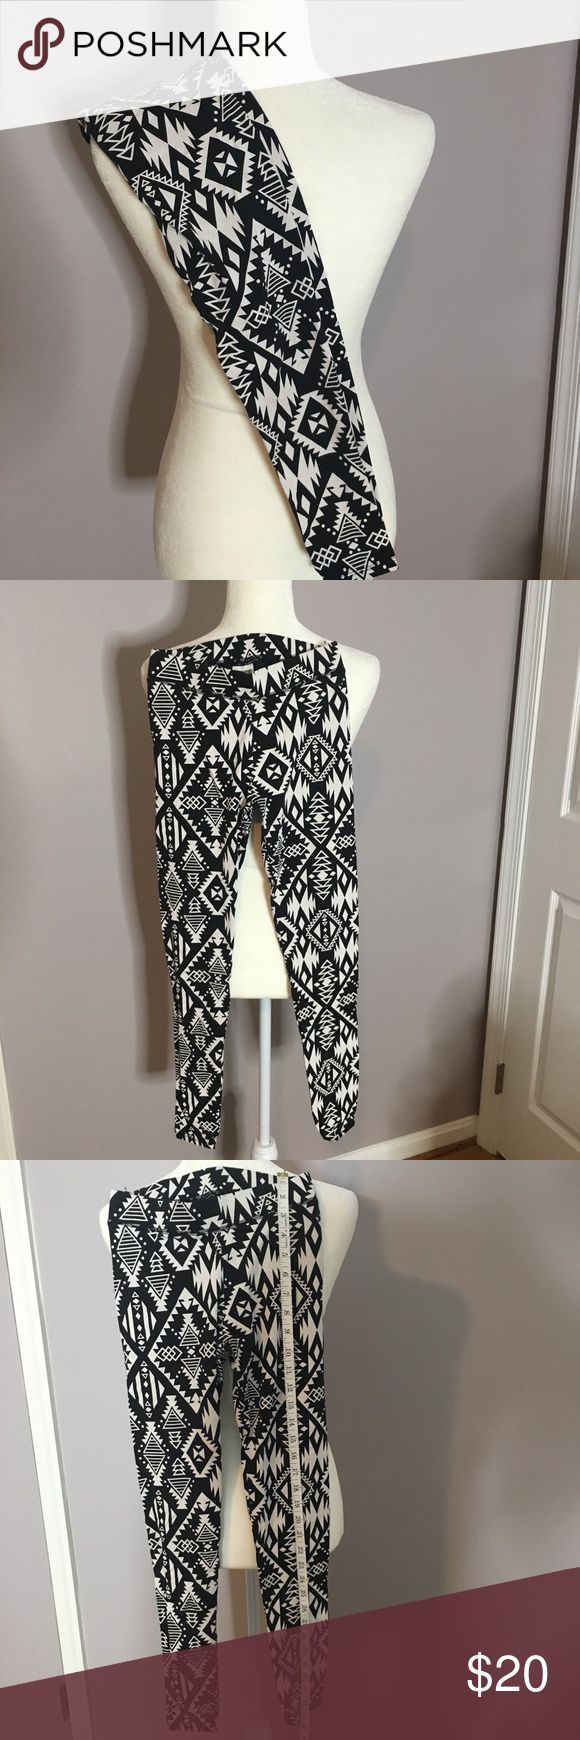 PINK aztec leggings Size XS PINK by Victoria's Secret Aztec black and white long leggings size XS. These are in excellent pre-owned condition. PINK Pants Leggings